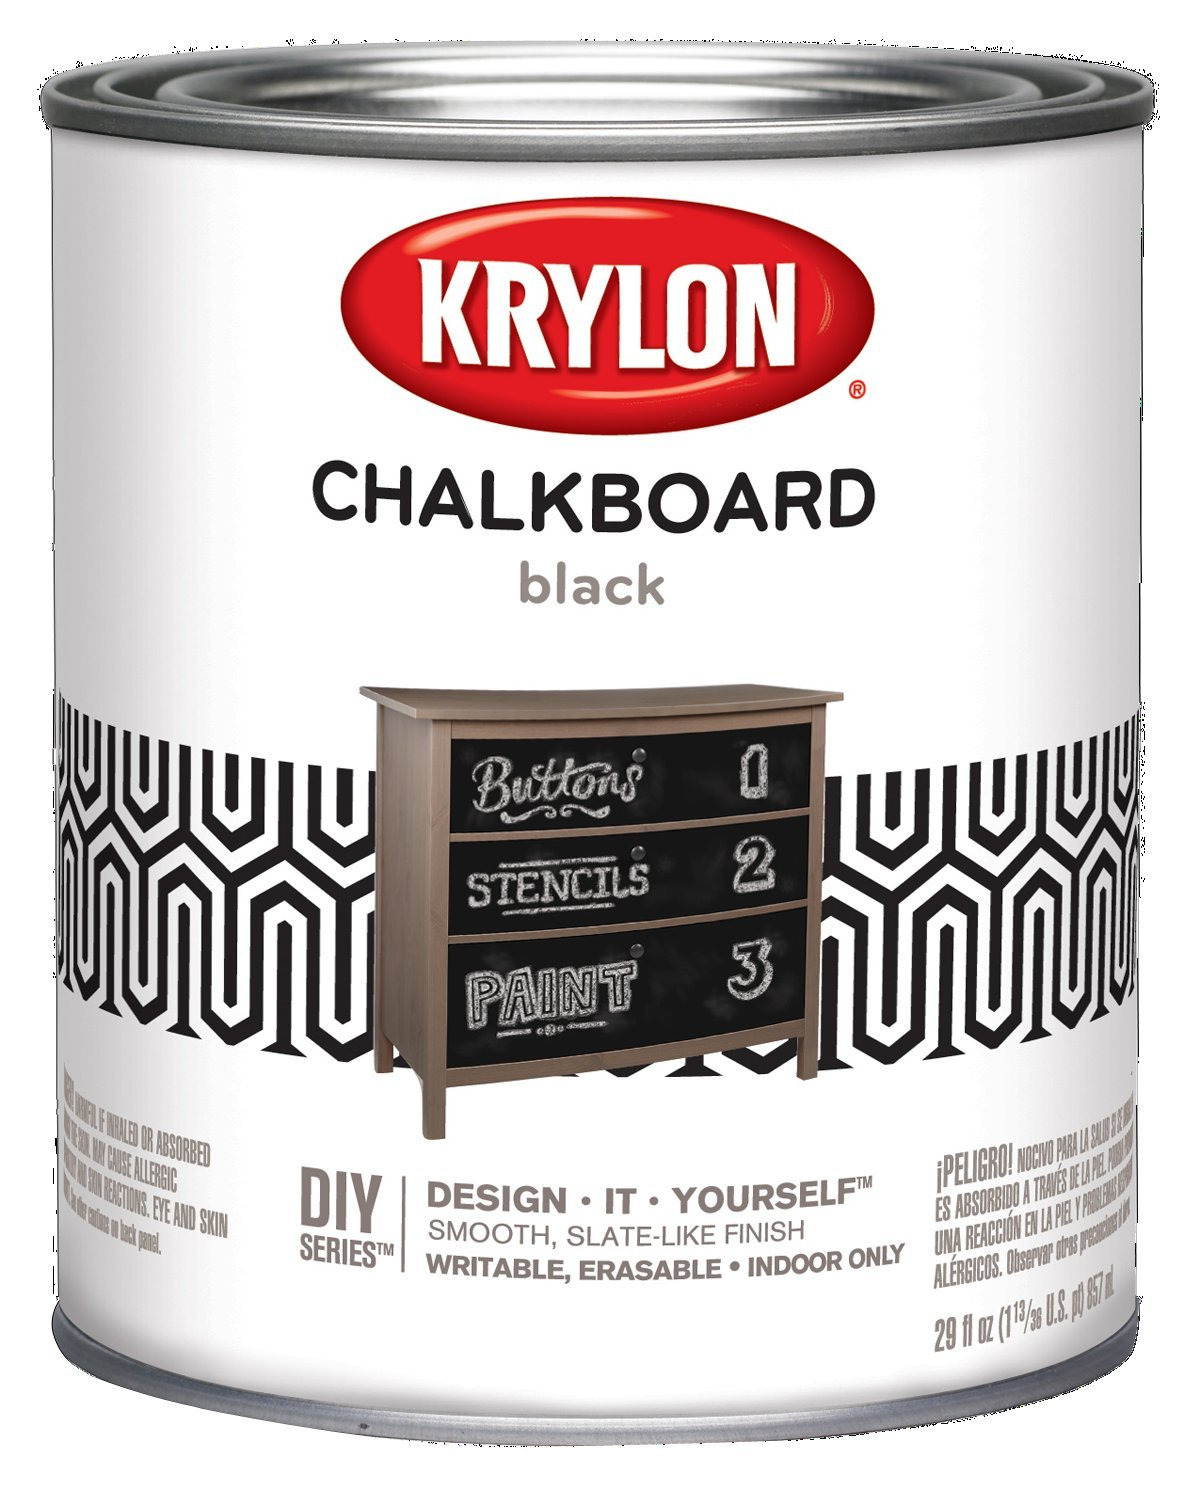 Krylon K05223000 Chalkboard Paint Special Purpose Brush-On, Black, Quart by Krylon